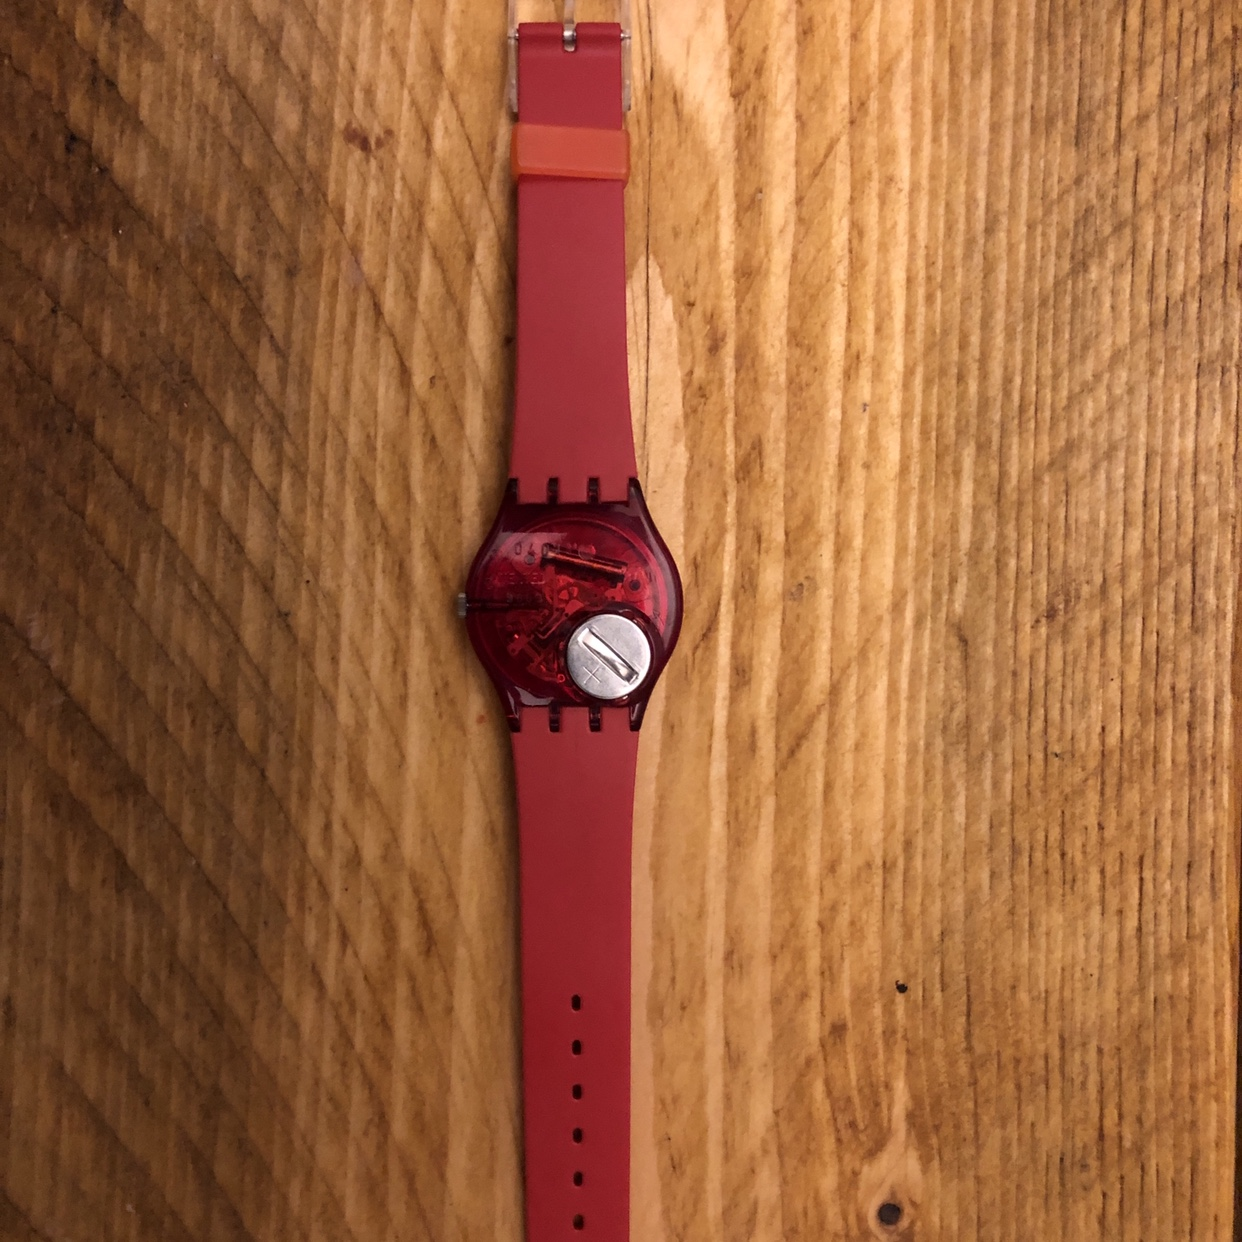 Unisex Swatch Watch featuring a unique design on Depop